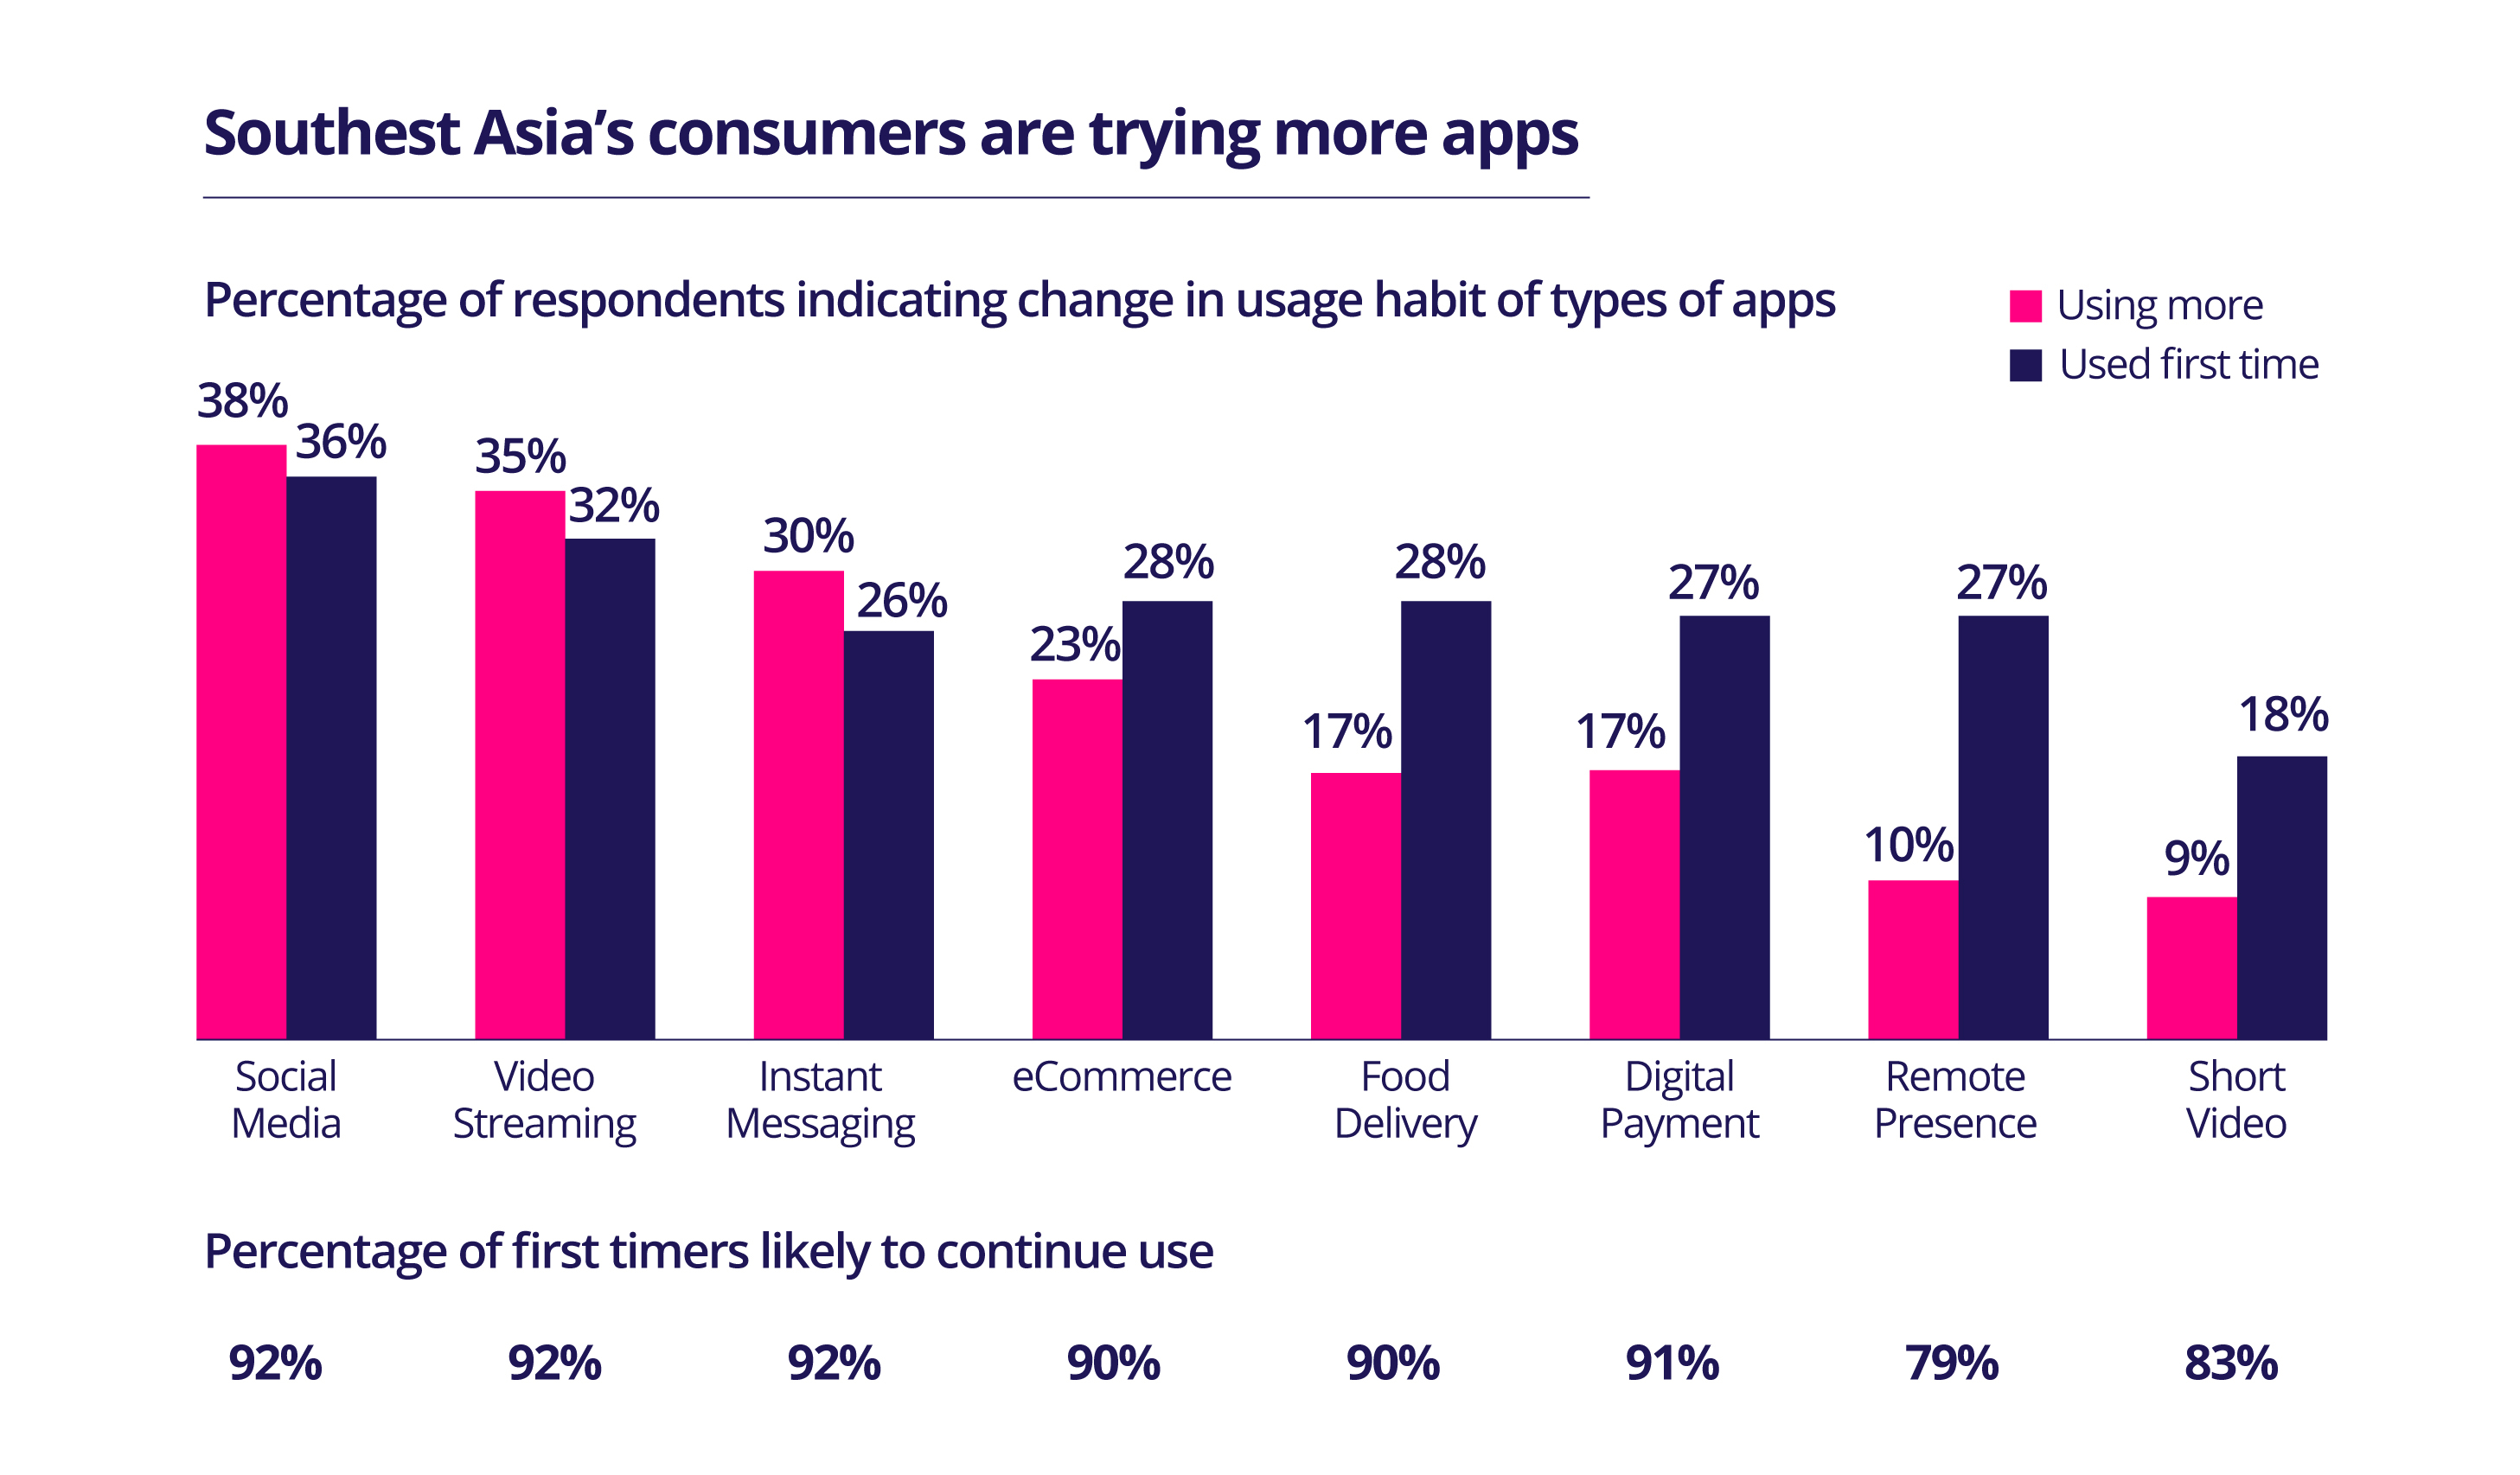 Percentage of new app users